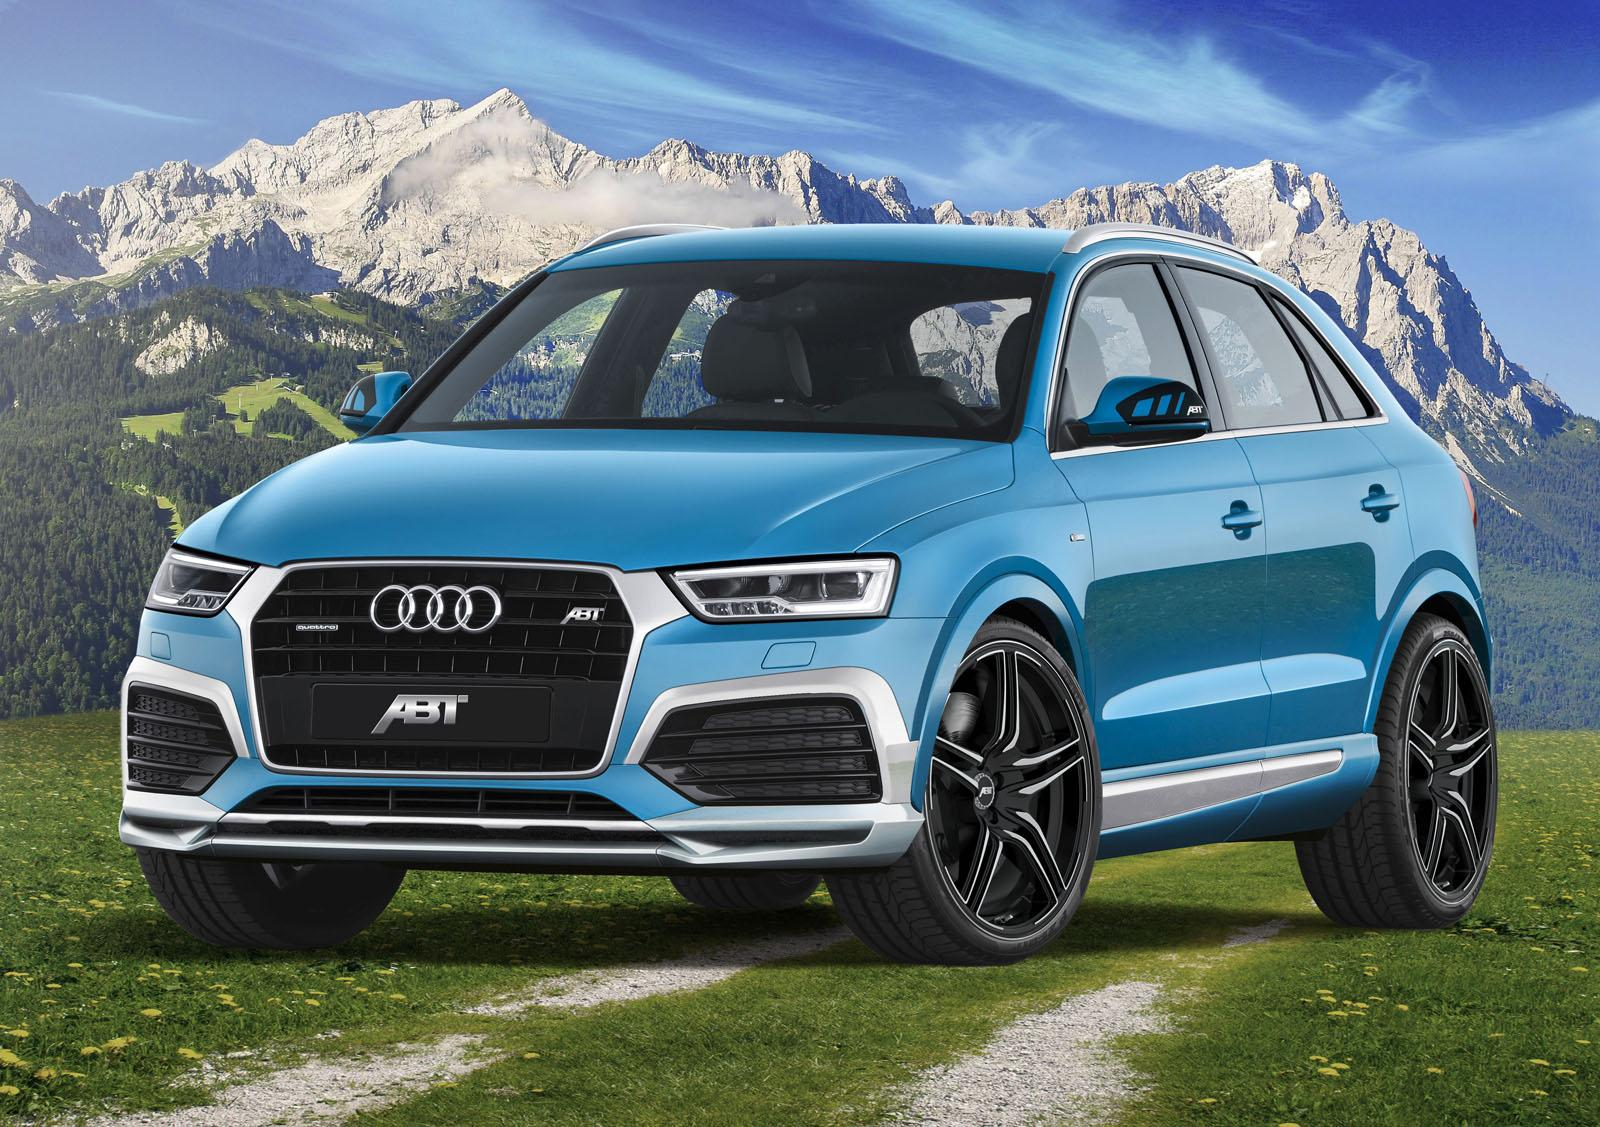 2015 audi q3 gets abt cosmetic tuning 210 hp upgrade for 2 0 tdi autoevolution. Black Bedroom Furniture Sets. Home Design Ideas